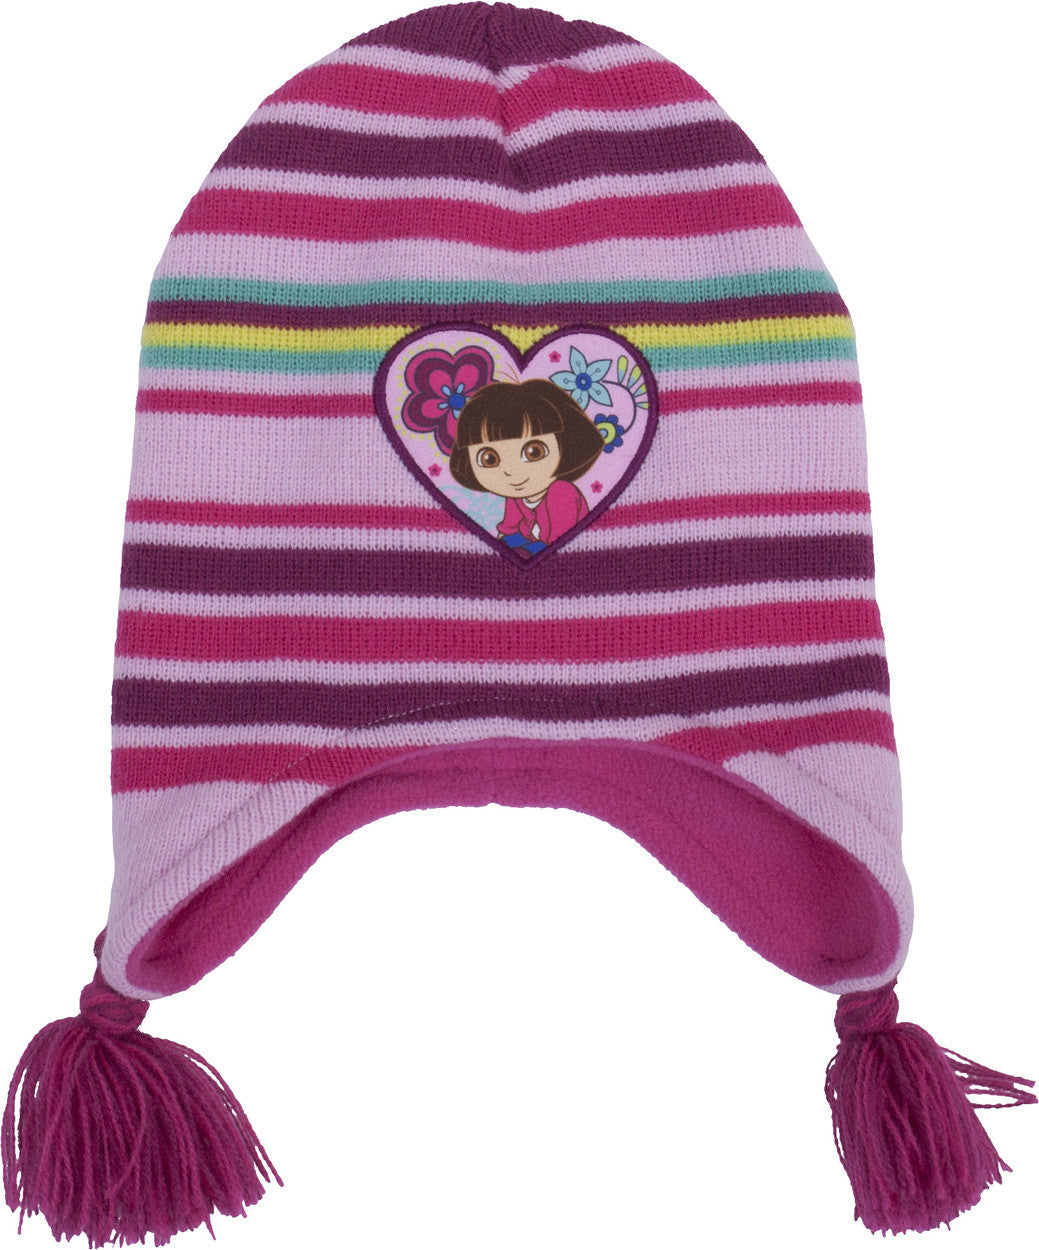 "Dora The Explorer ""Jardin"" Fashion Hat - Toddler - nickelodeonstore.co.uk"